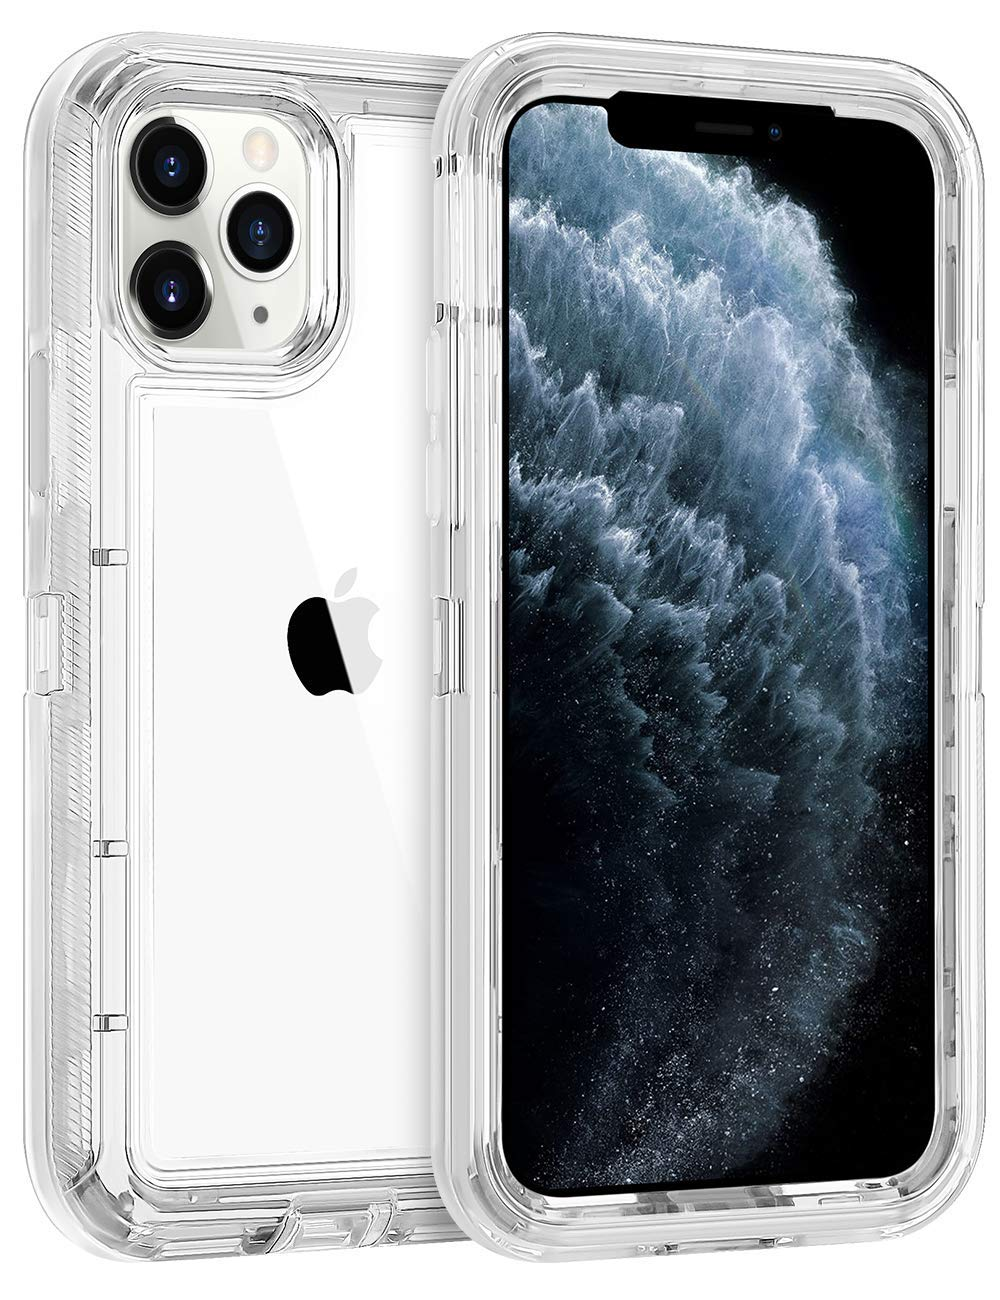 ORIbox Protective Case for iPhone 11 pro, Heavy Duty Shockproof Anti-Fall case, More Suitable for People with Big Hands, Crystal Clear, Military Grade Drop 3 in 1